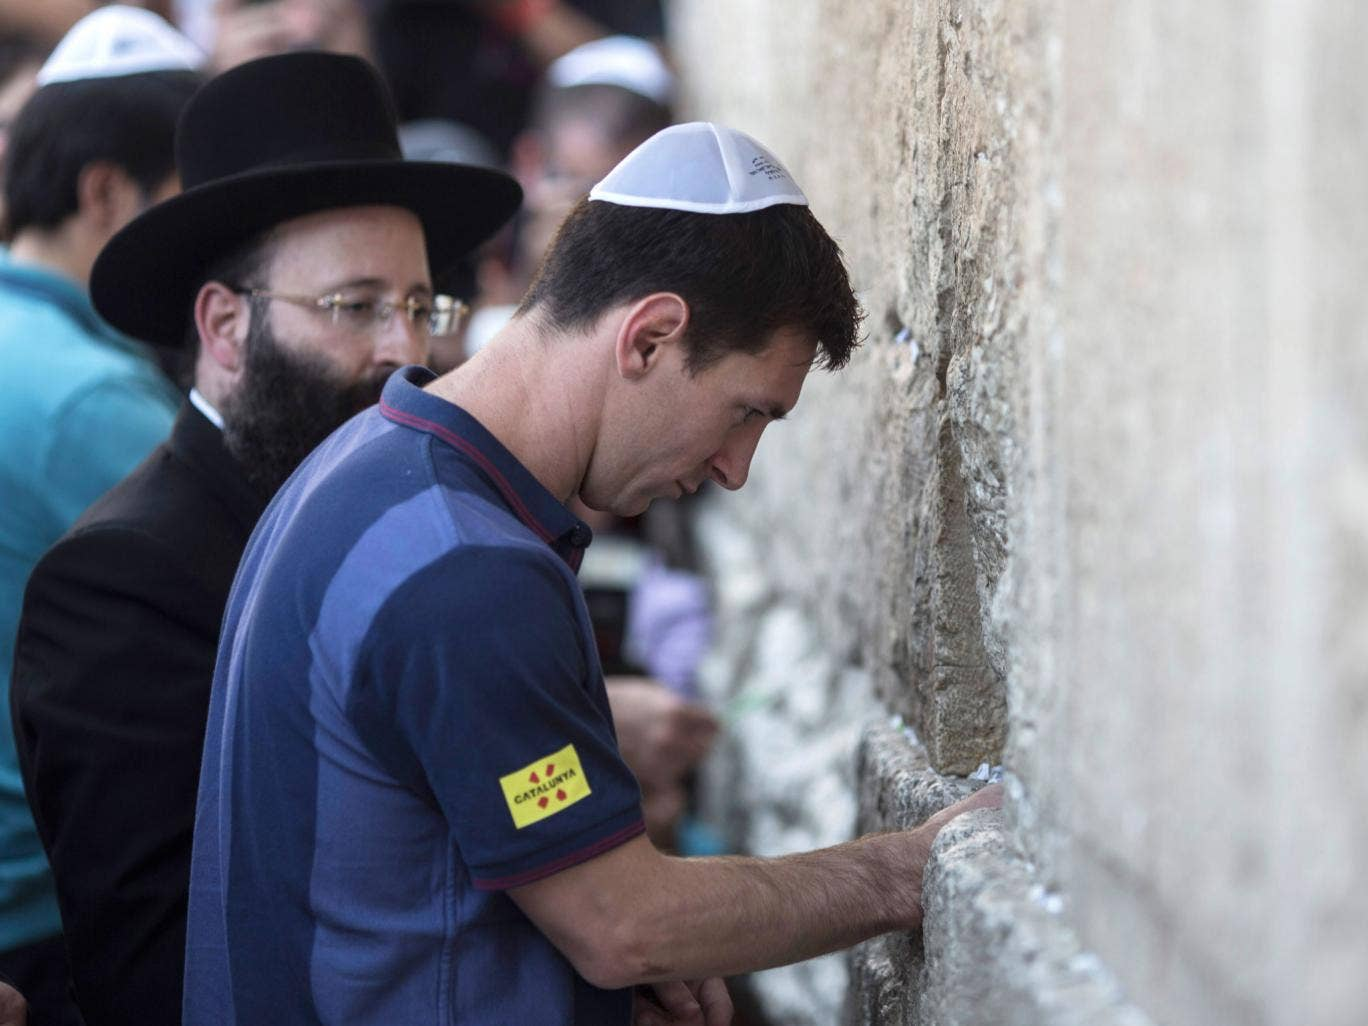 Barcelona footballer Lionel Messi places a wish on Jerusalem's Western Wall